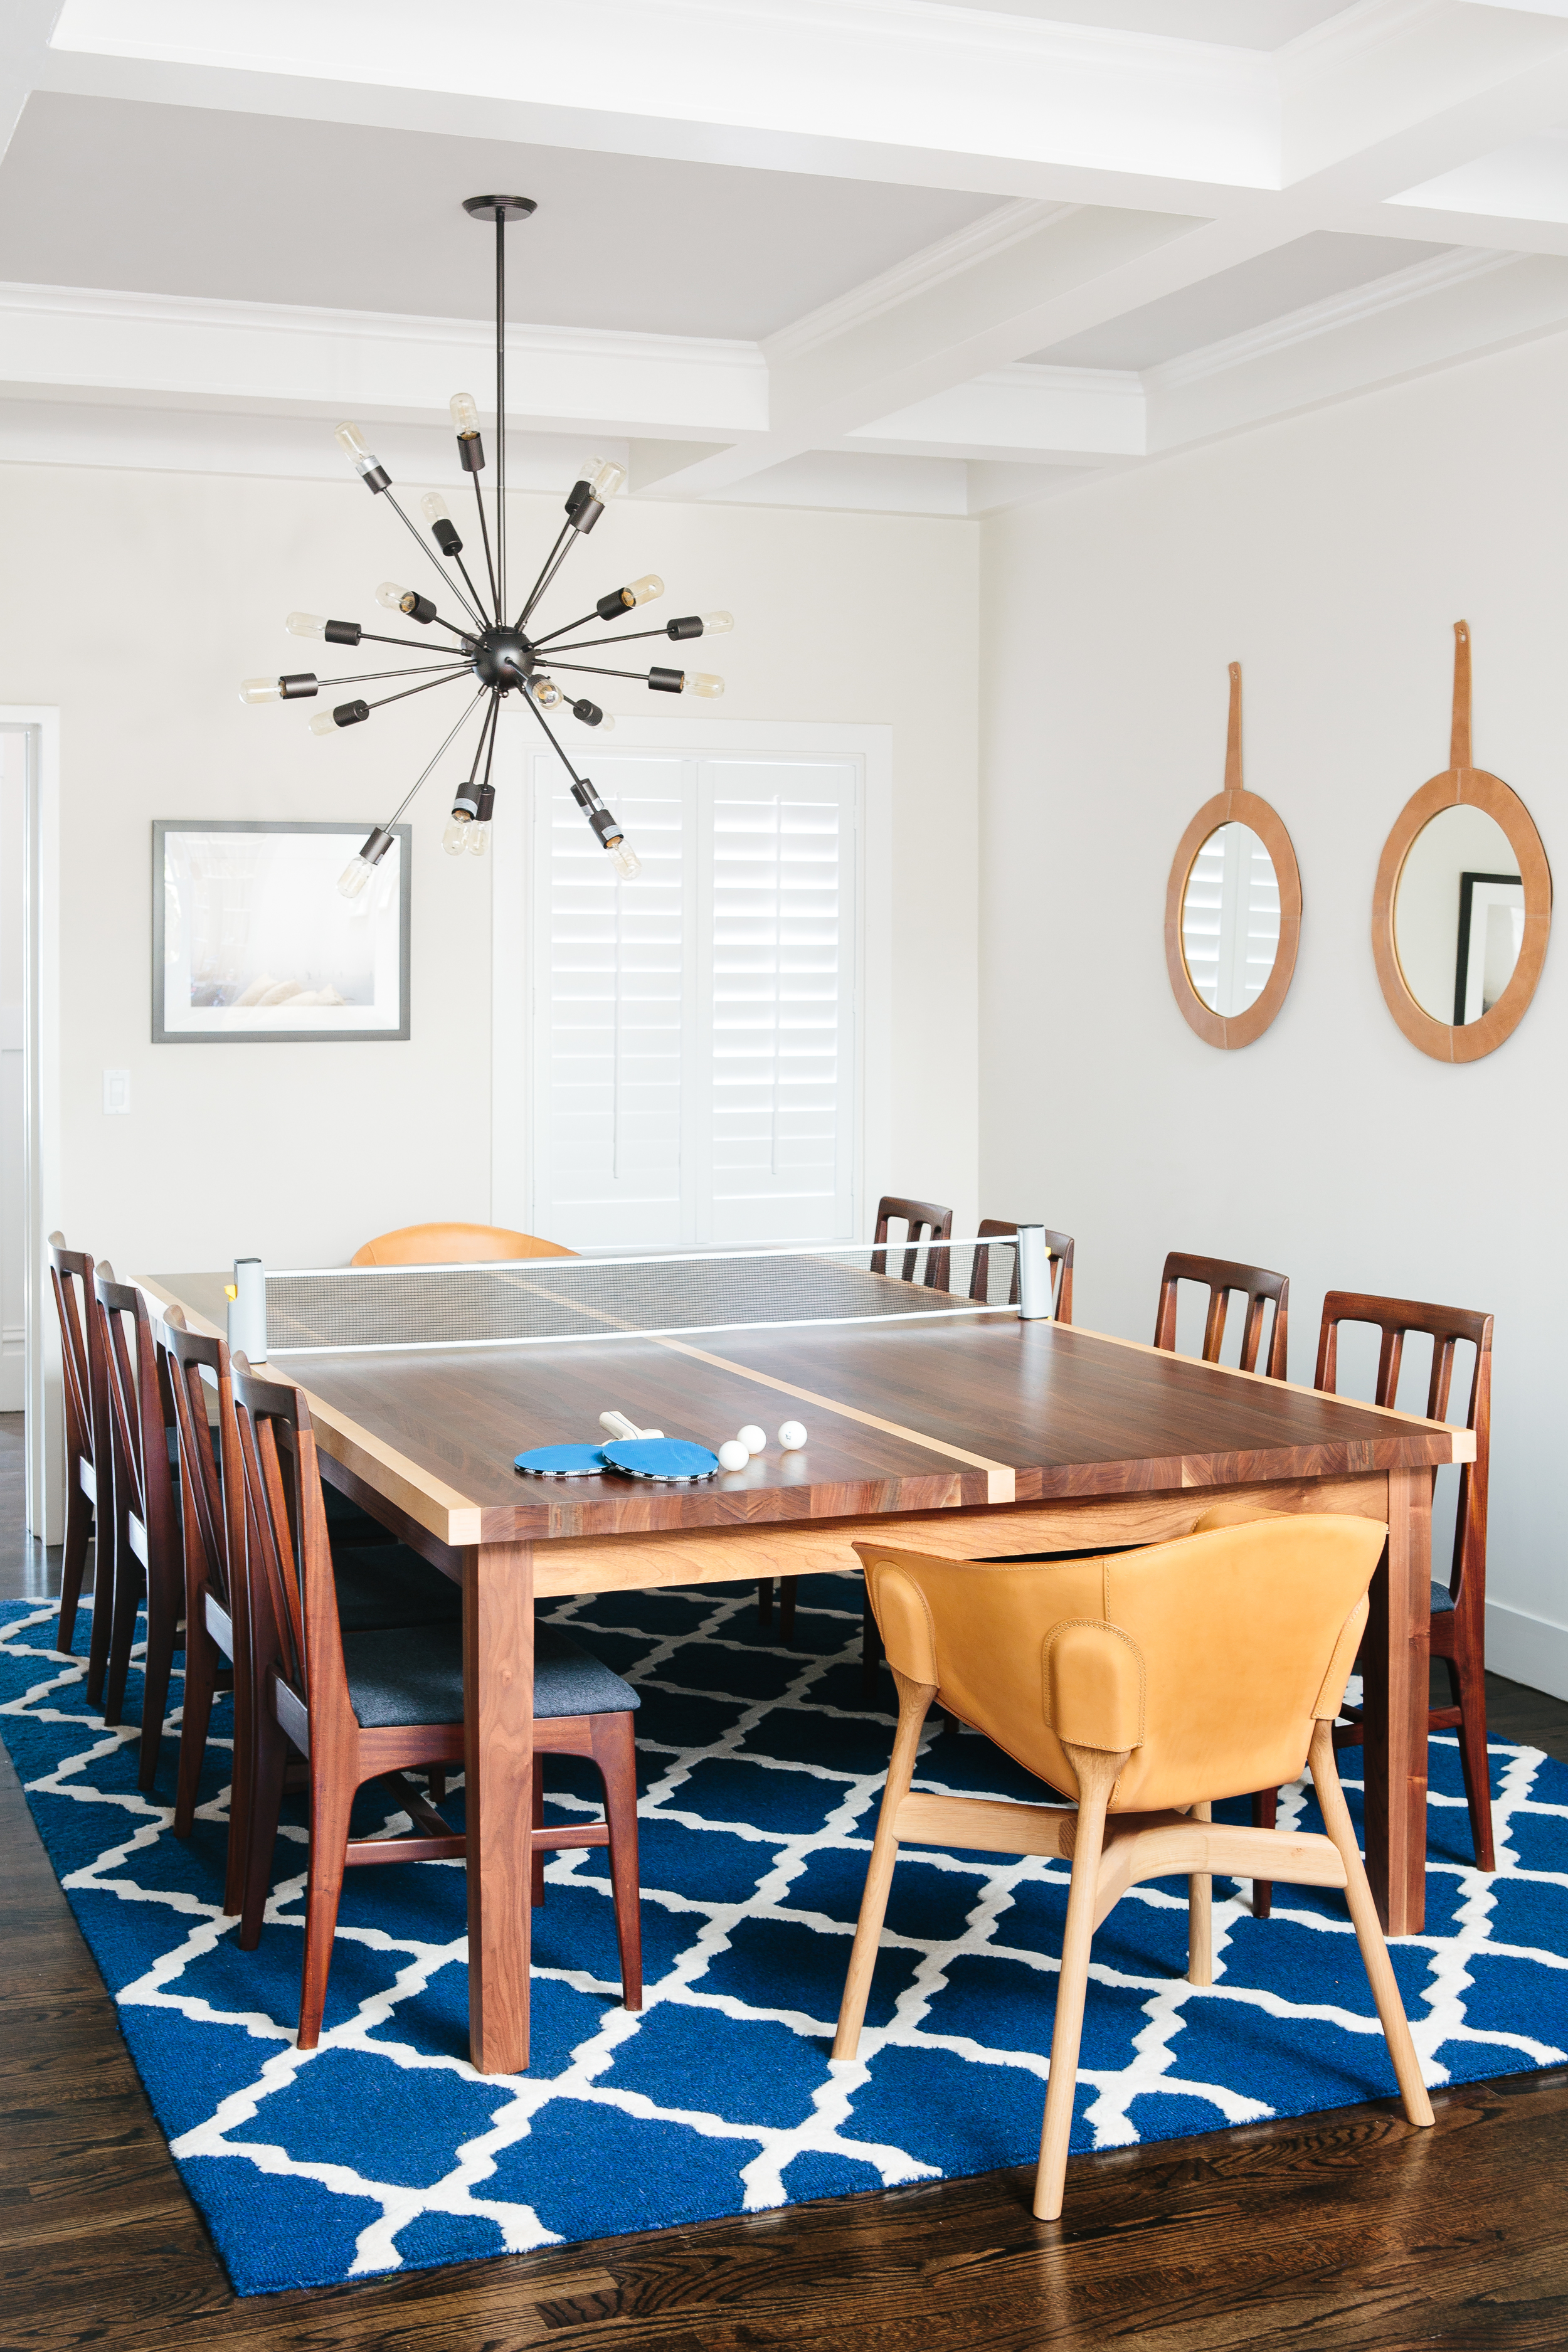 Noz Design - Avenues Family House - Dining Room 2.jpg